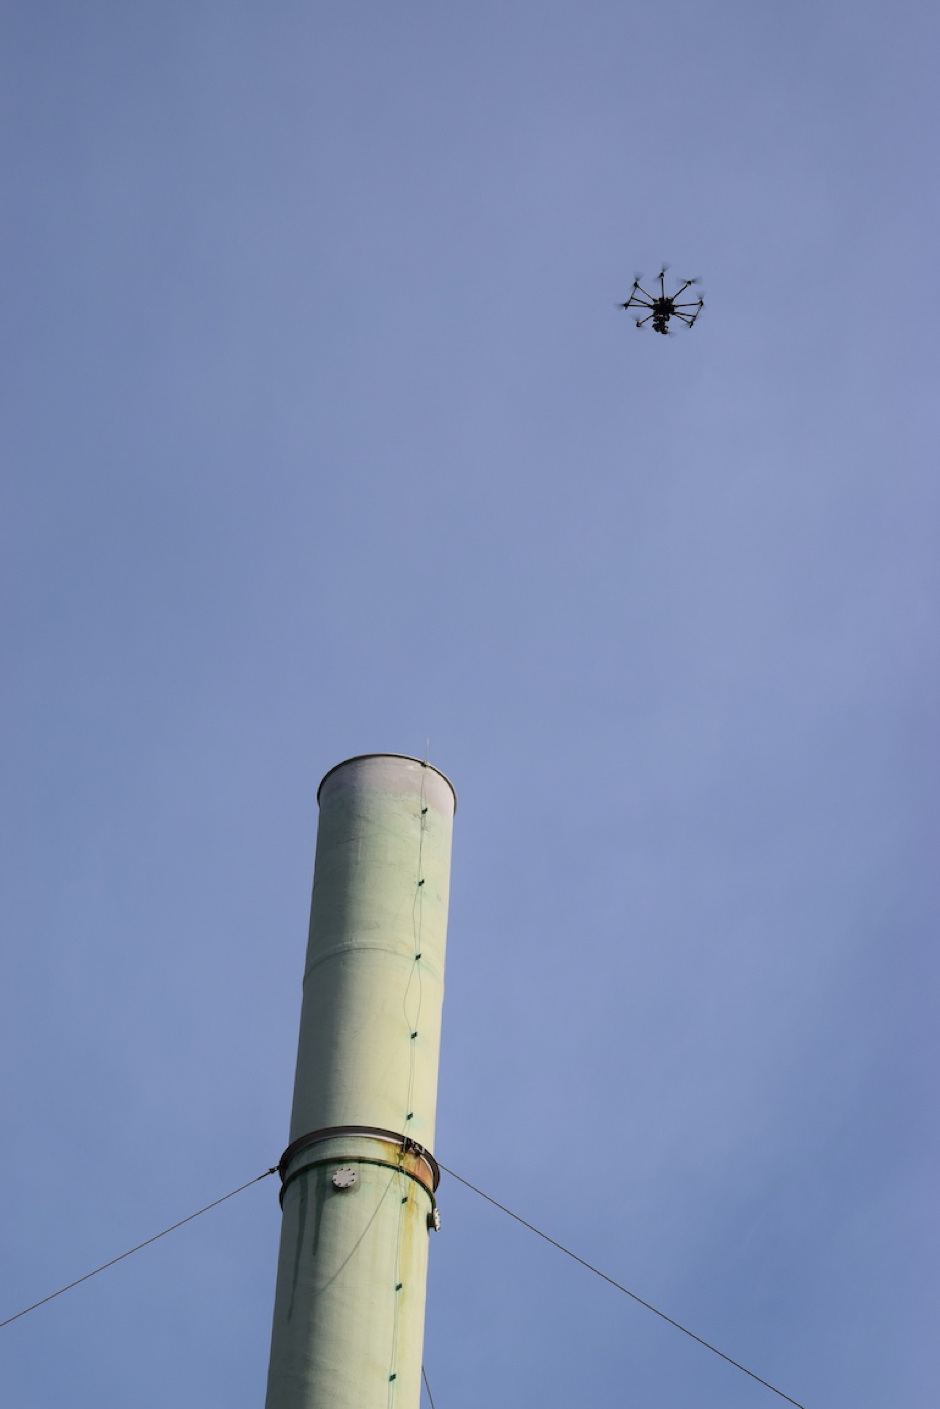 The use of drones to capture imagery and footage for a range of industries has opened a new market in SA.